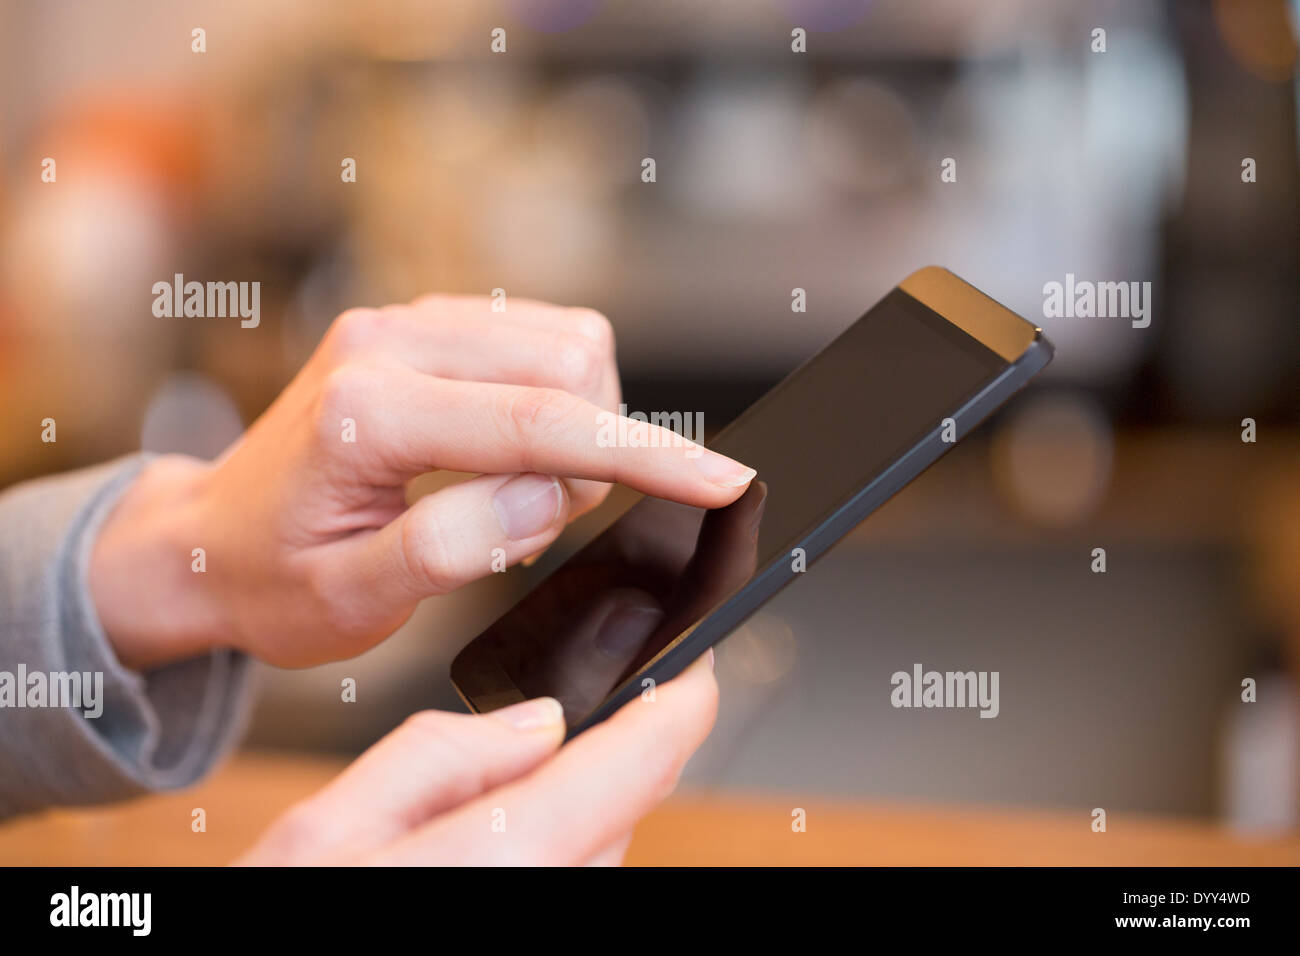 female smartphone pub texting sms fingers - Stock Image